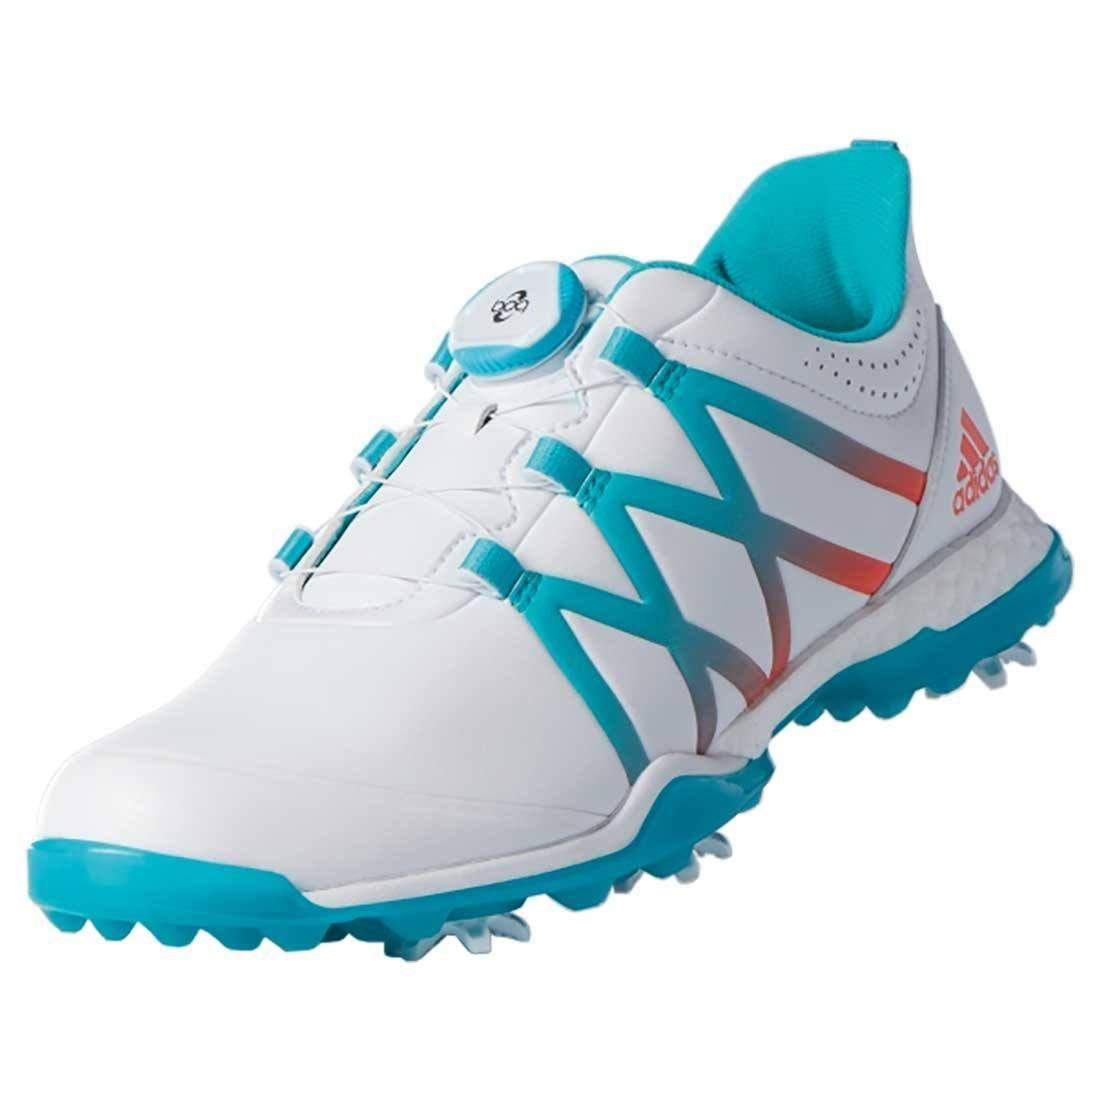 best girls golf shoes